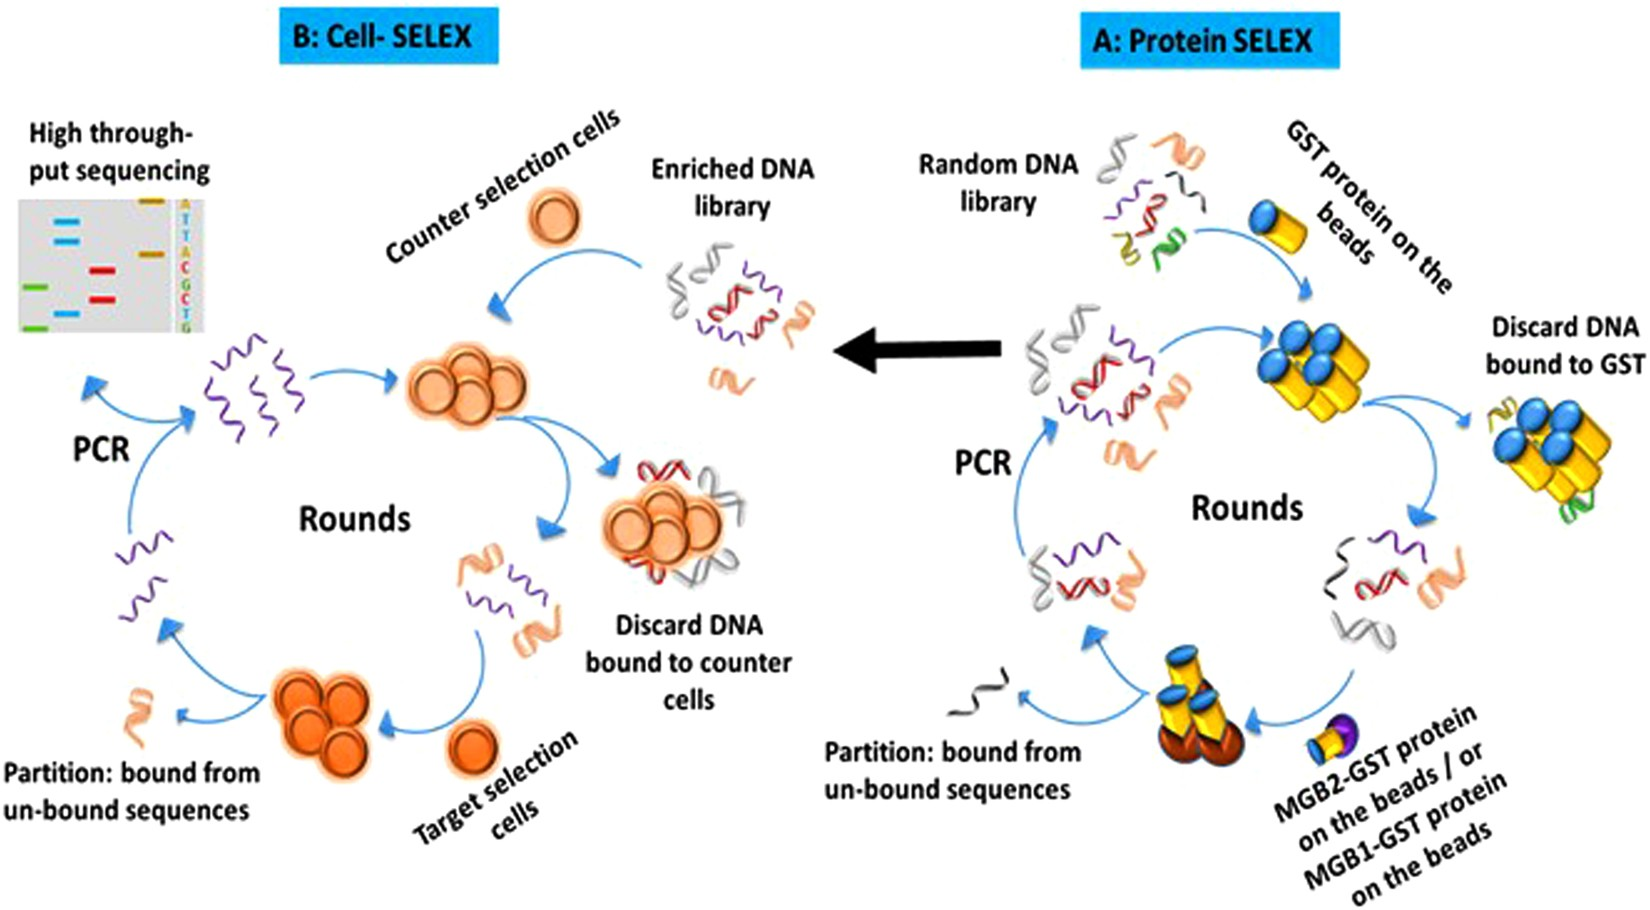 In vitro selections of mammaglobin A and mammaglobin B aptamers for